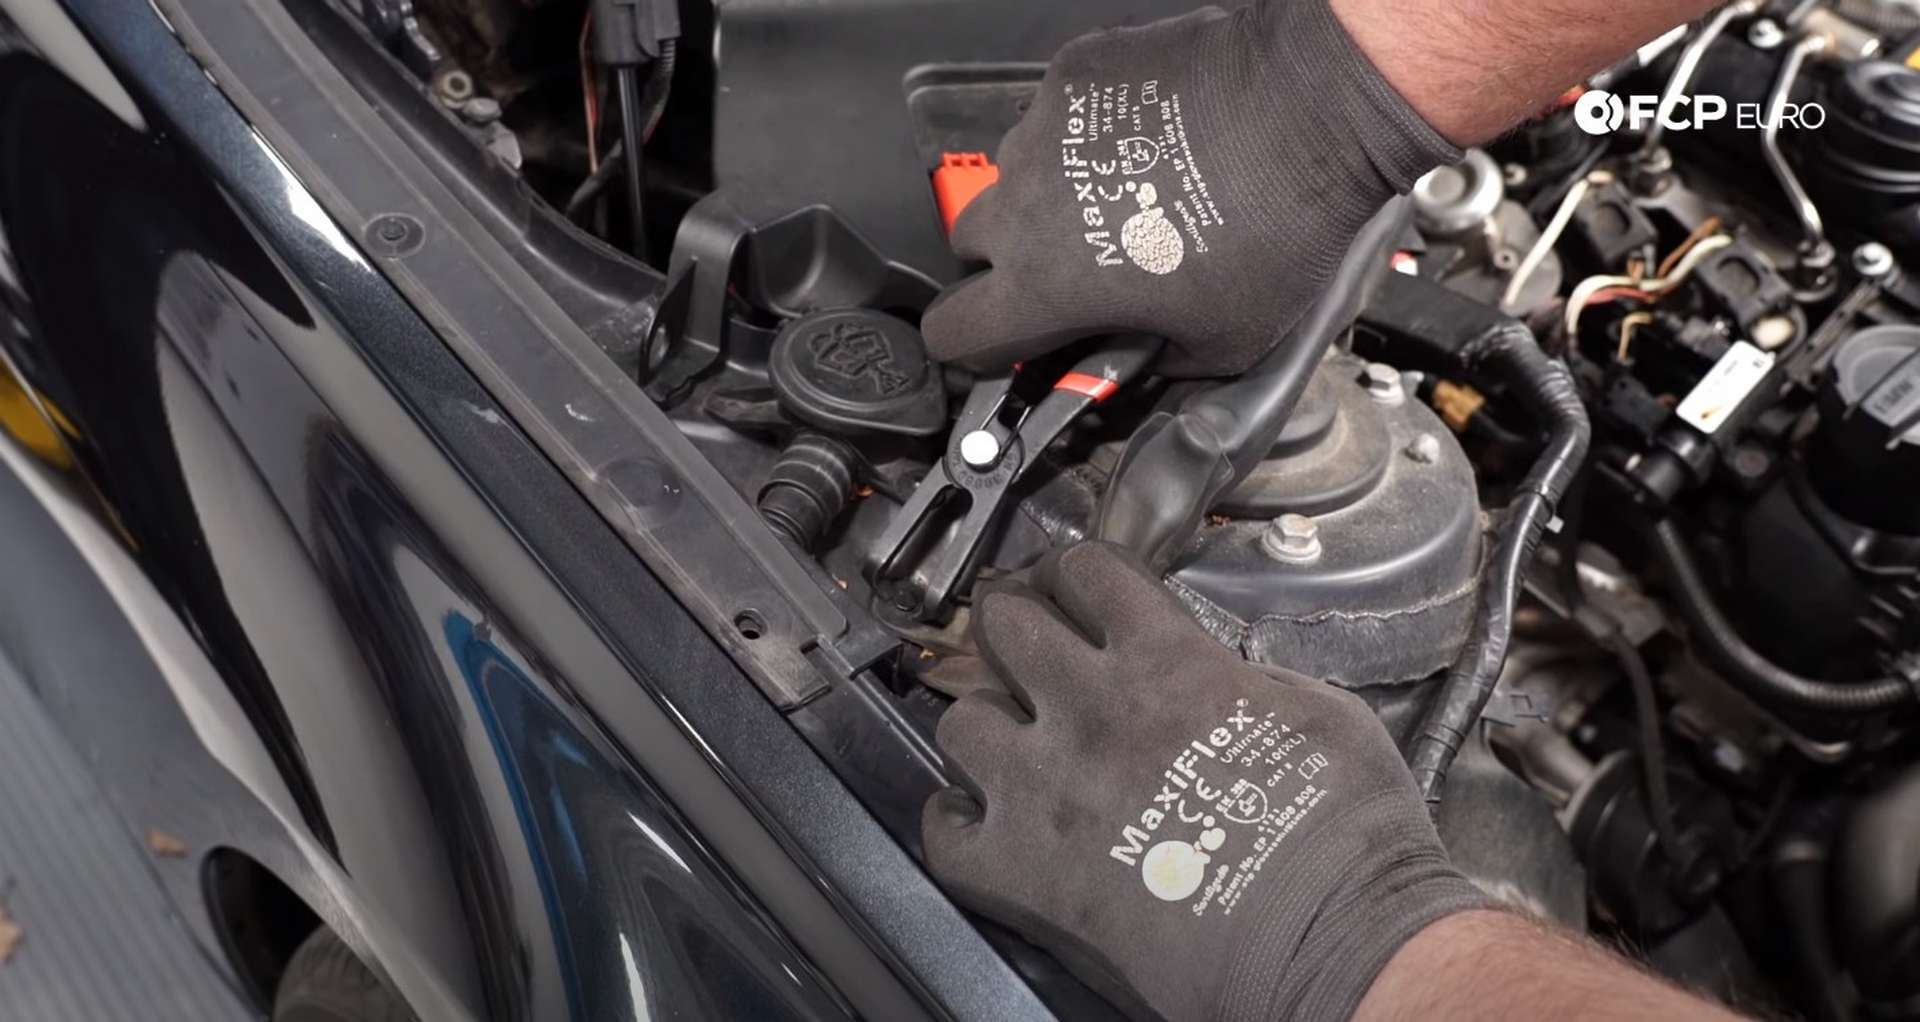 DIY BMW F30 High-Pressure Fuel Pump Replacement removing the cowl rivet